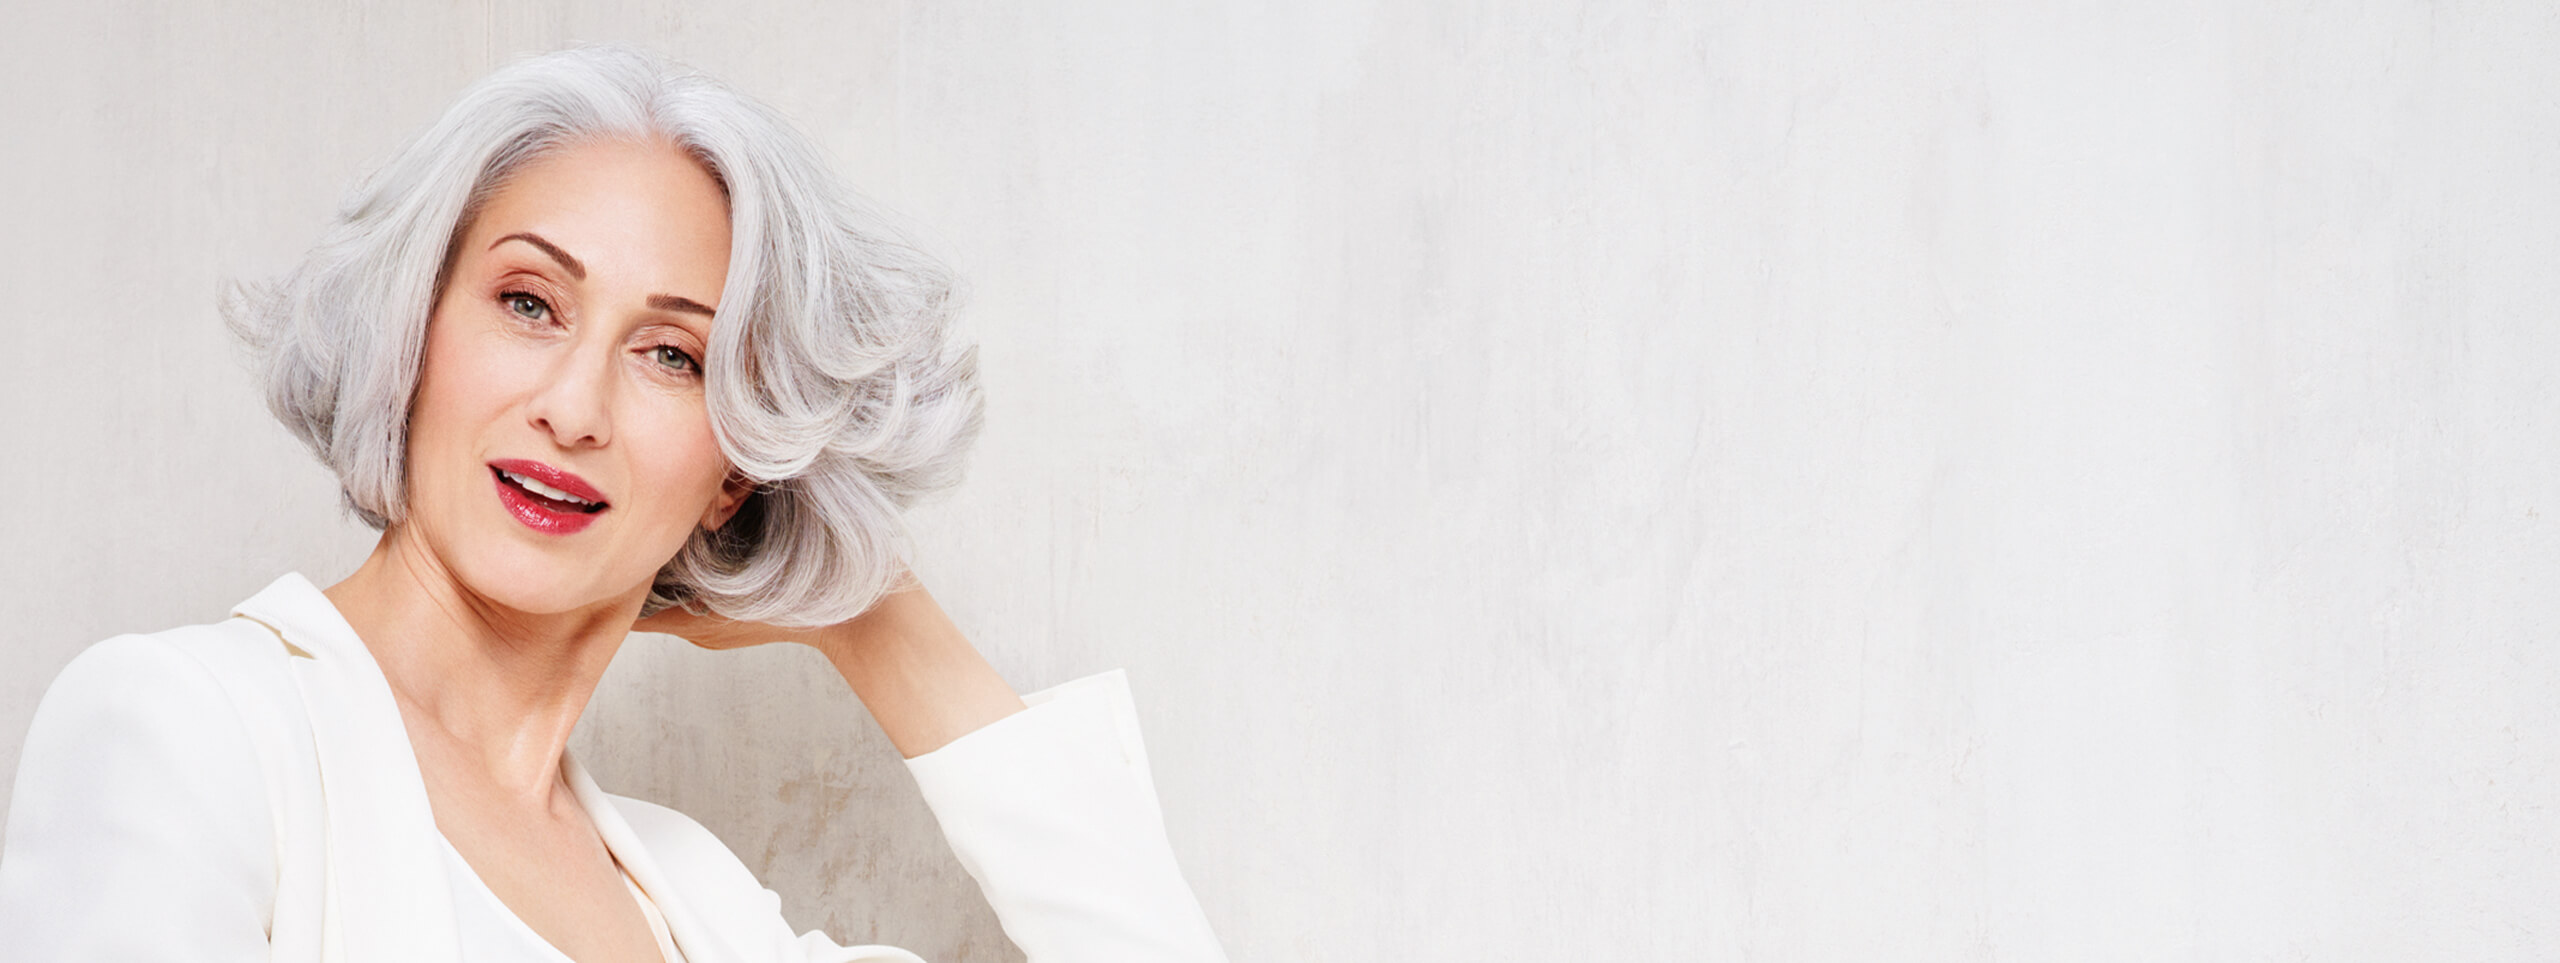 Woman wears light gray hair in a wavy bob hairstyle